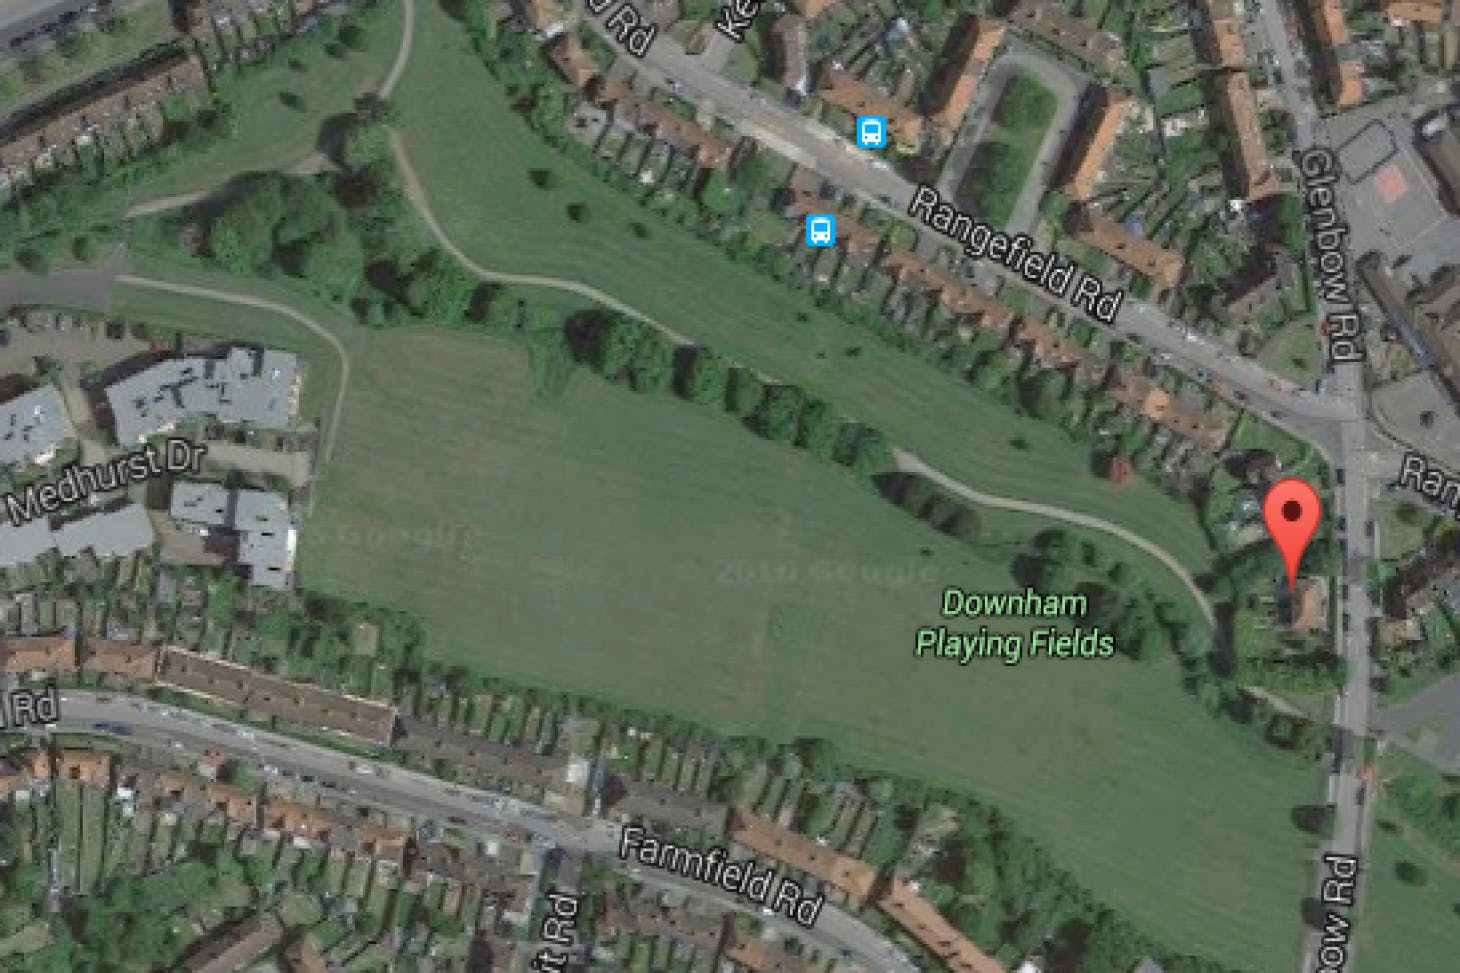 Downham Playing Fields 11 a side | Grass football pitch